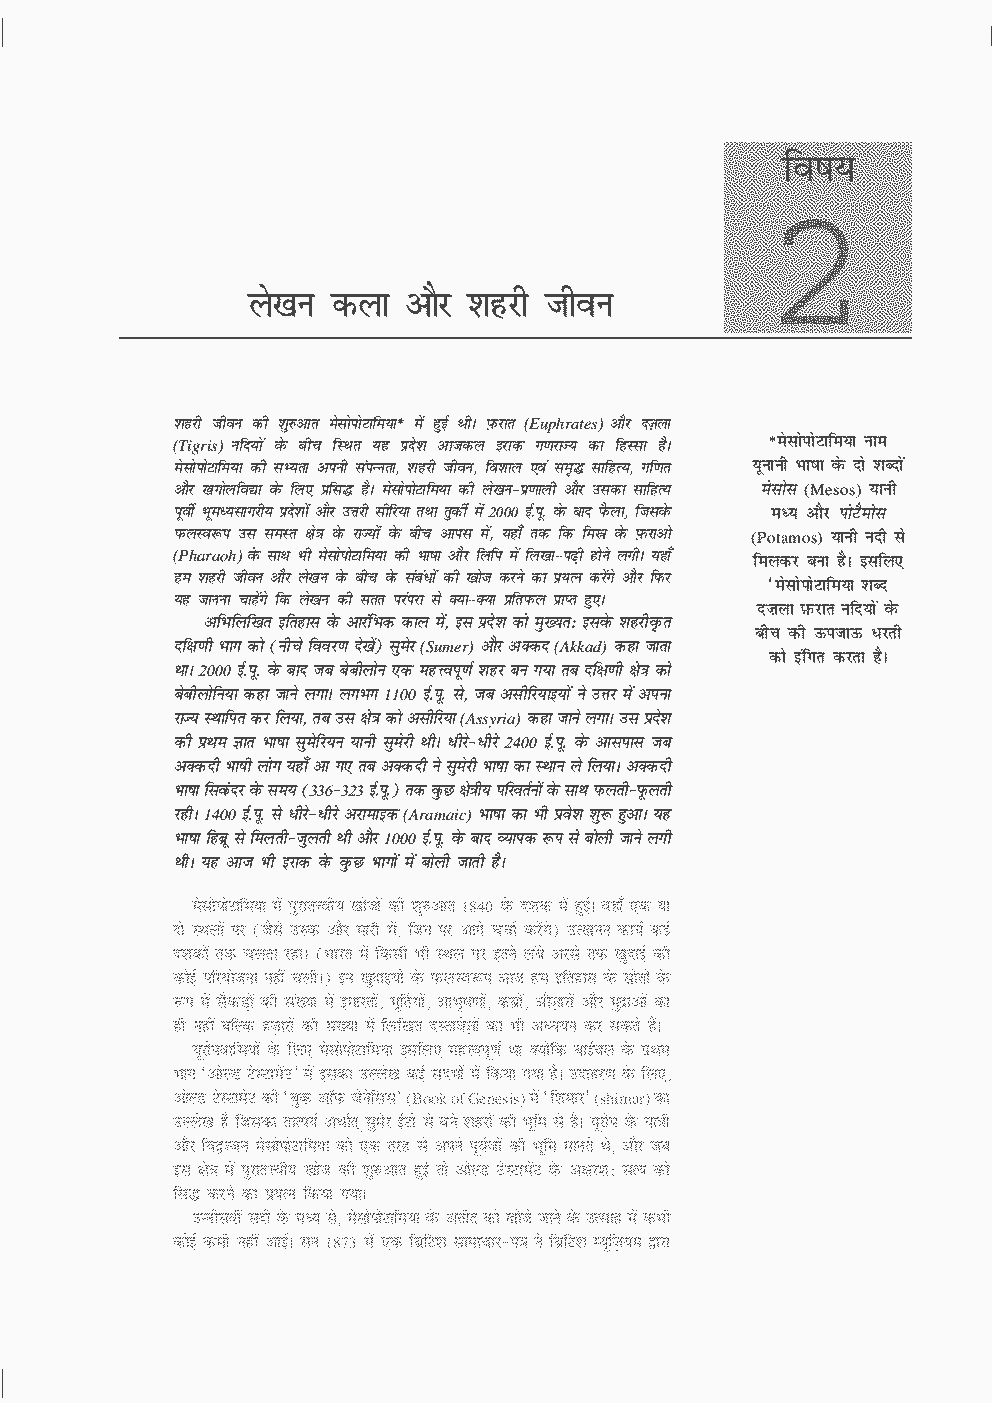 12th Ncert Book In Hindi